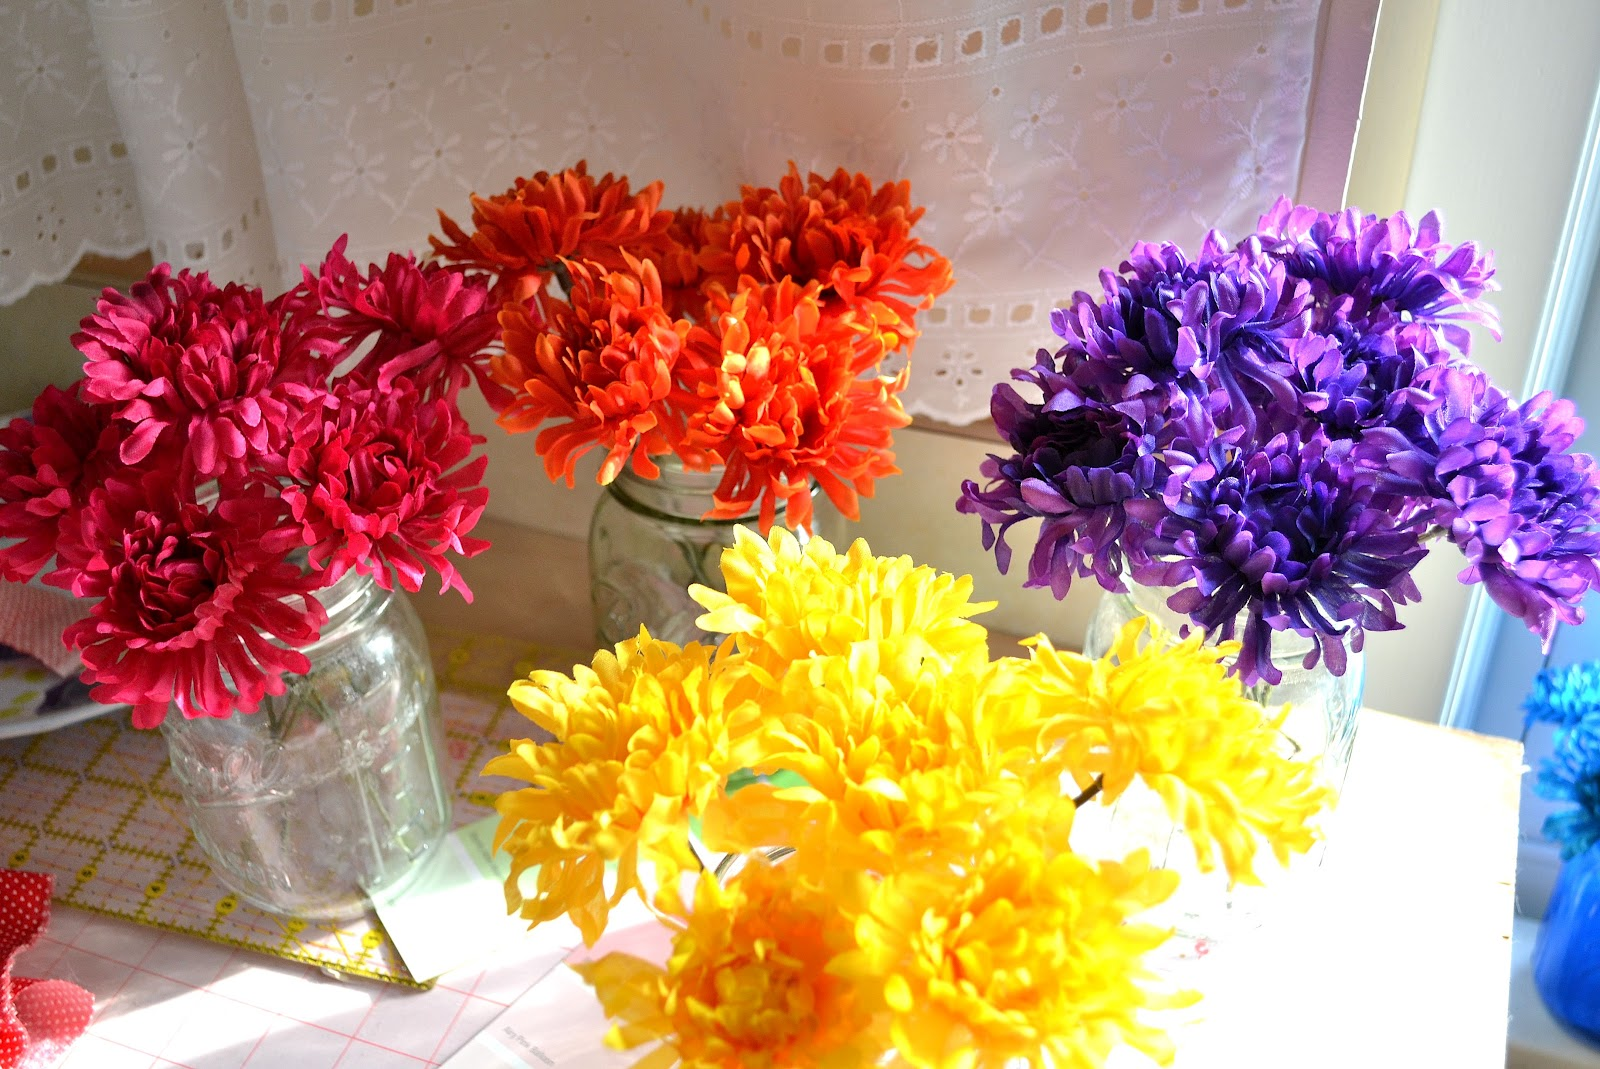 From The Hive: colored flowers in colored jars